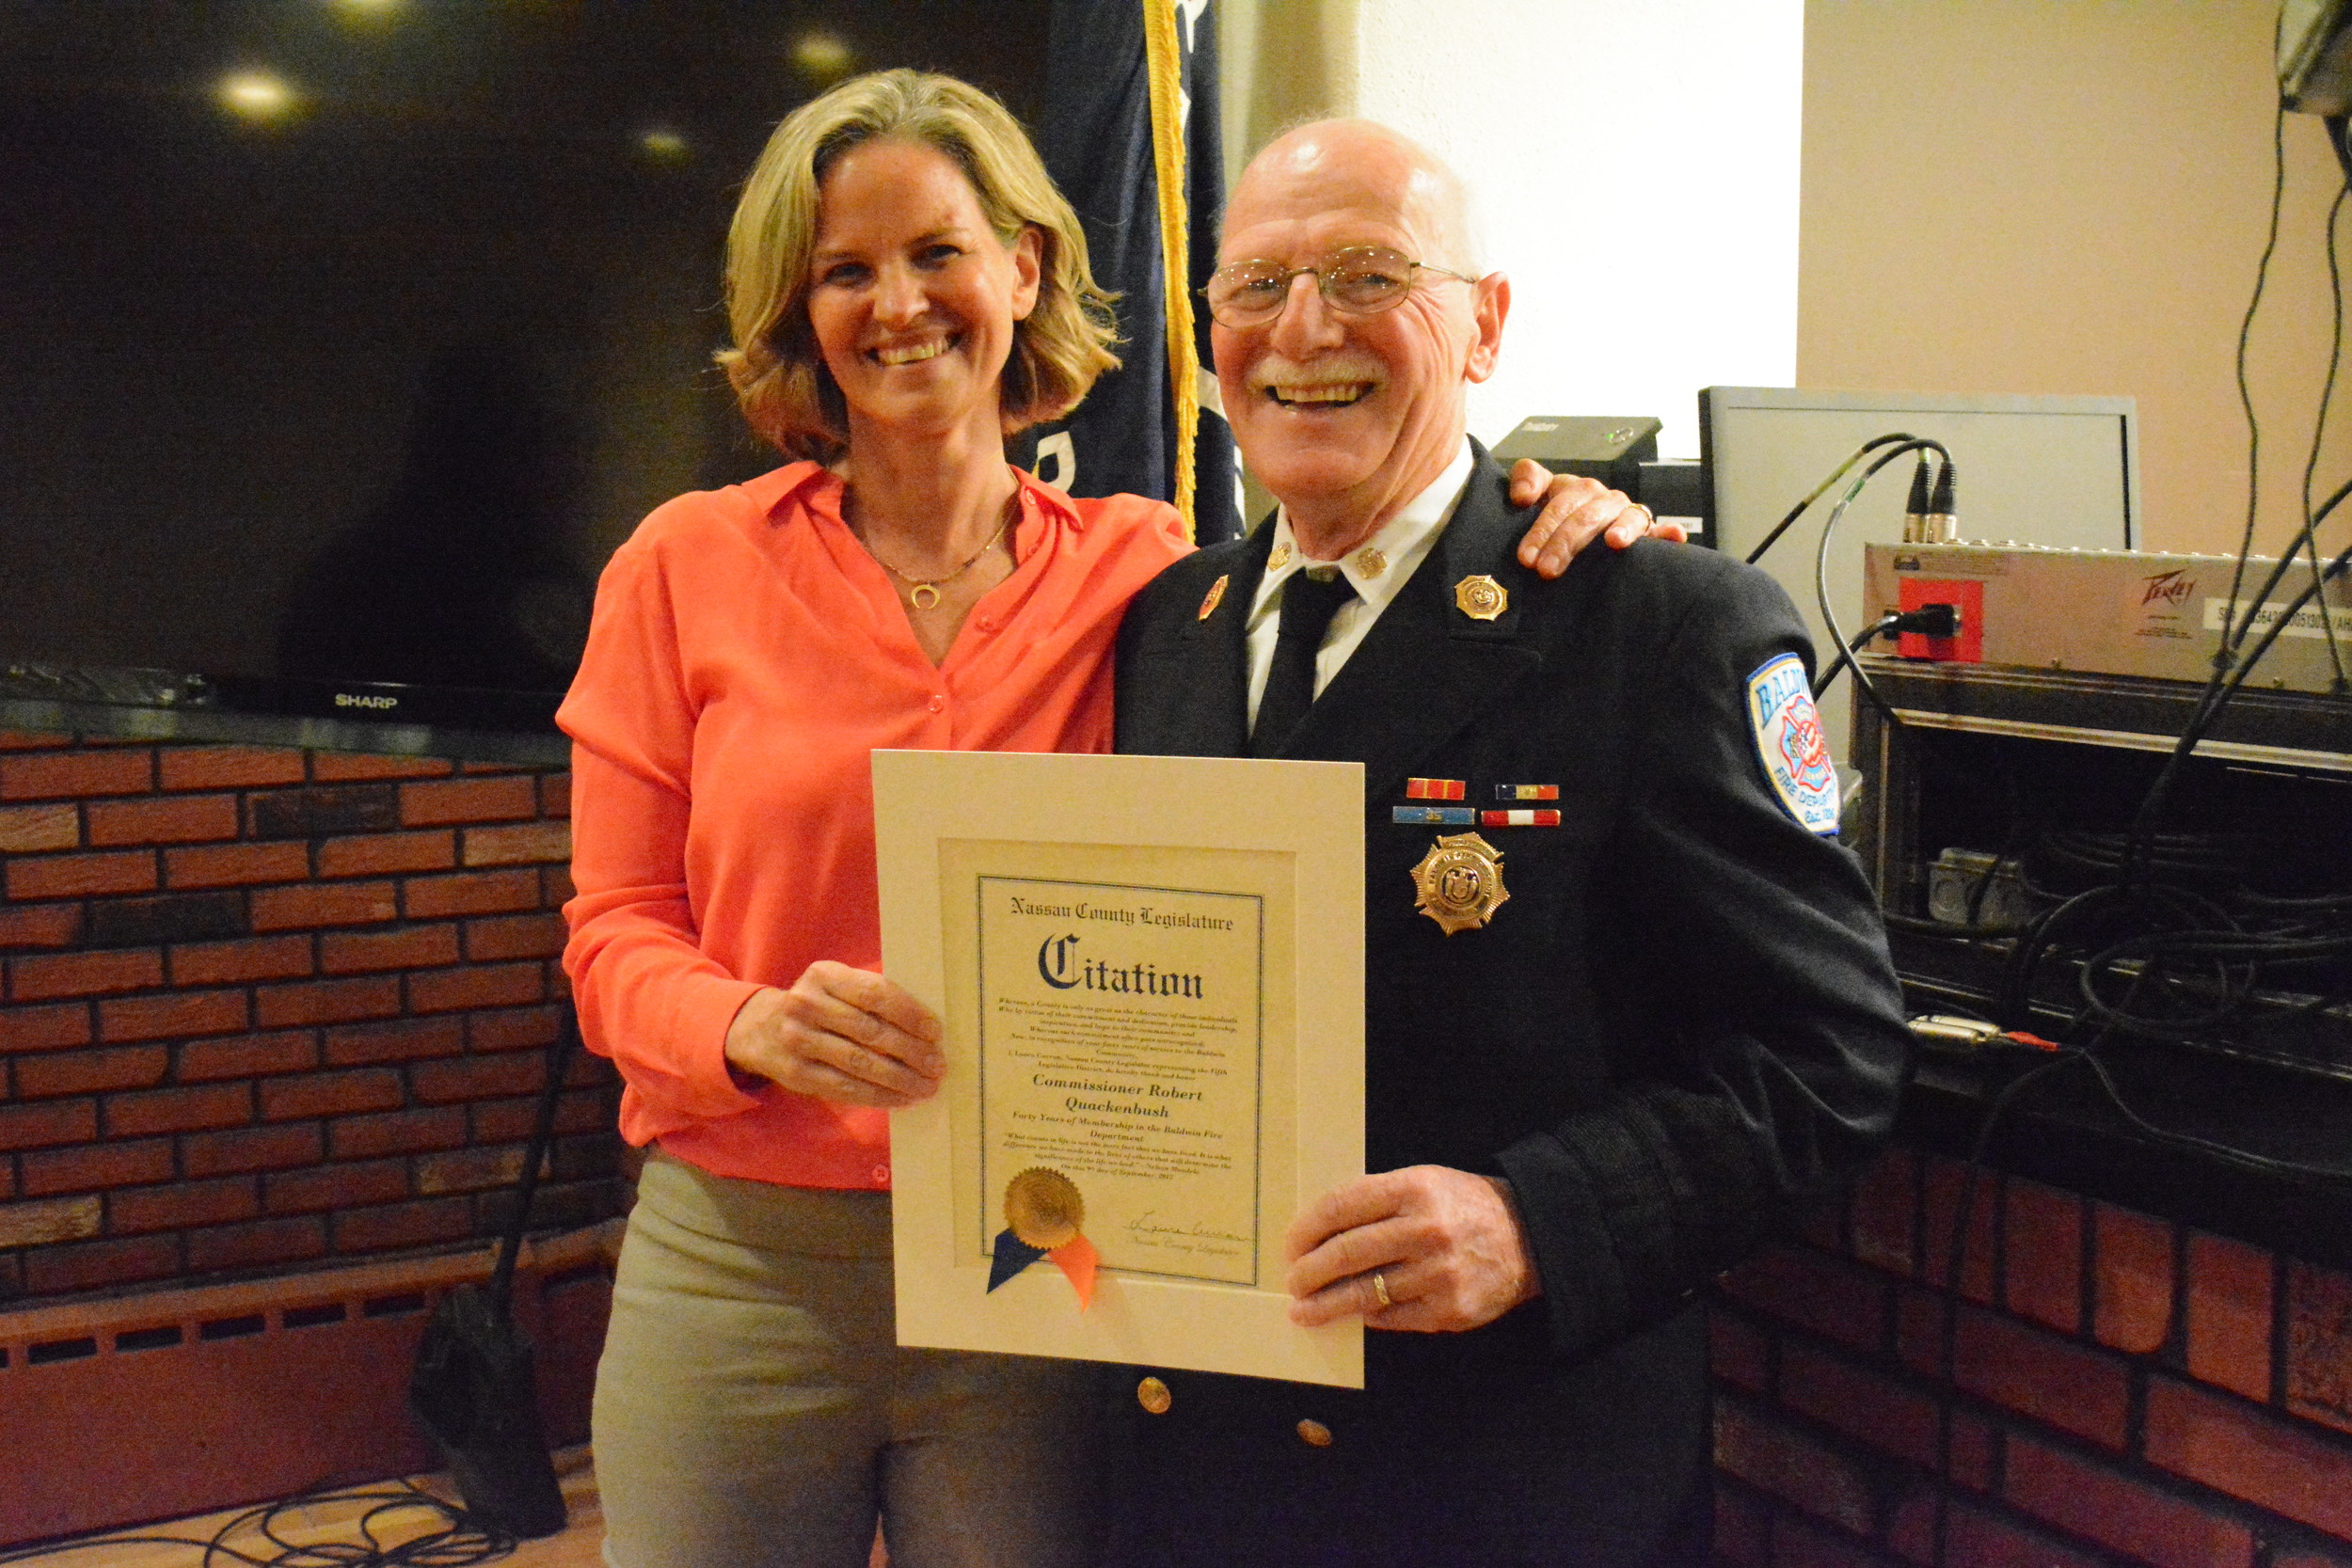 County Legislator Laura Curran presented Quackenbush with a citation in honor of his 40 years of service to the Fire Department.